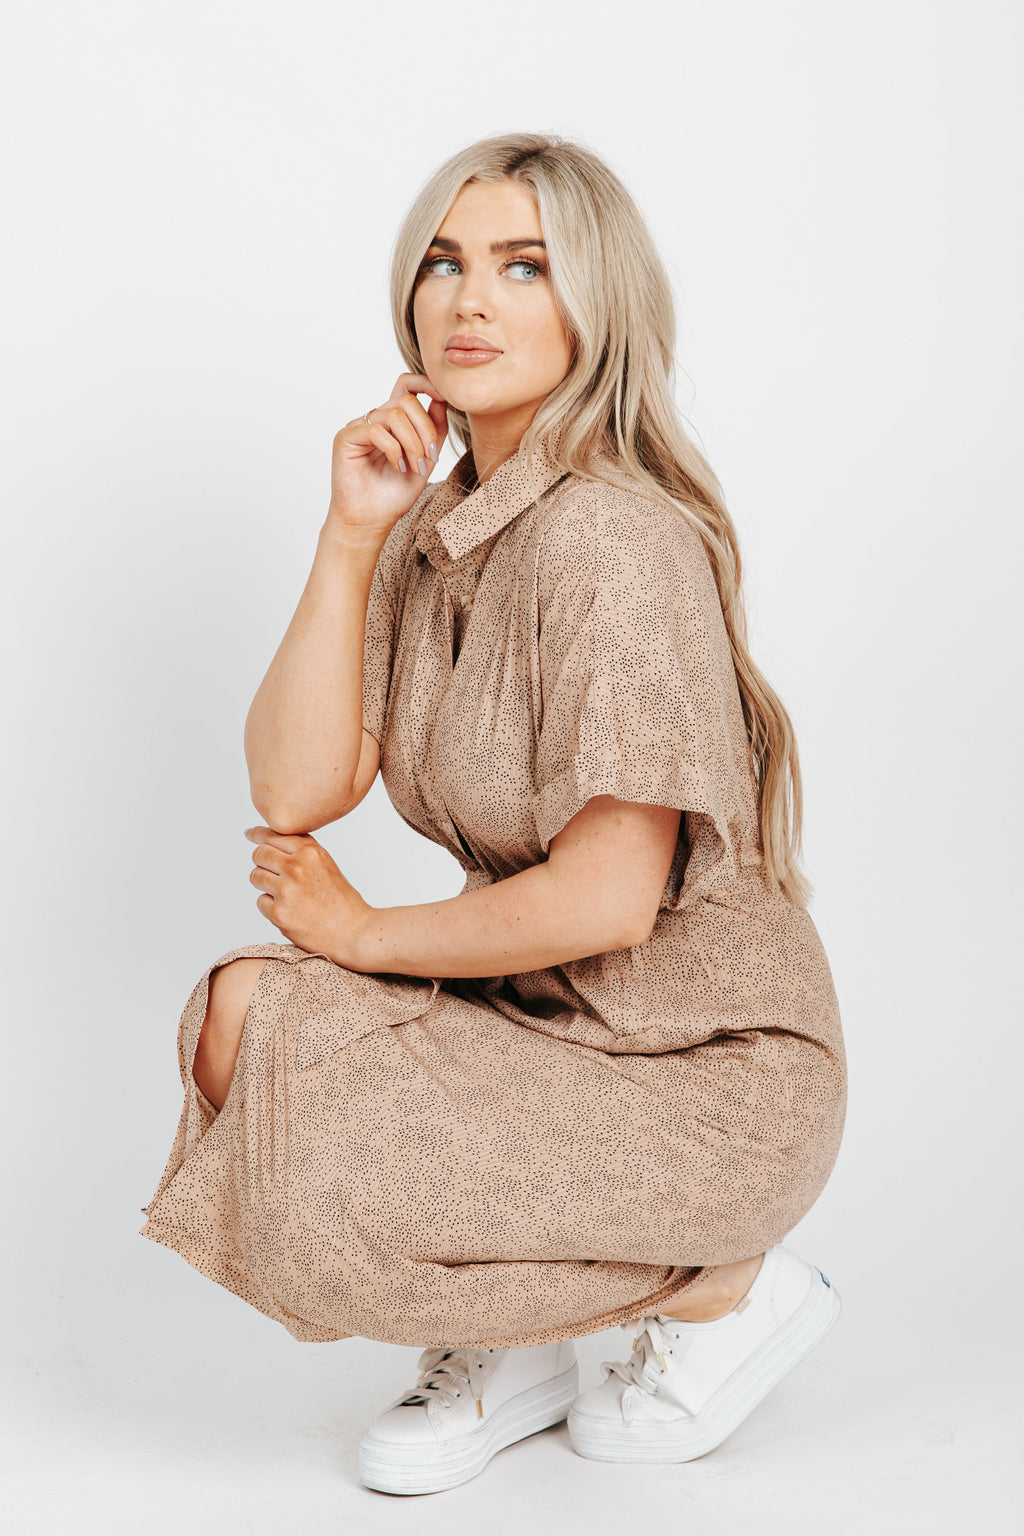 The Rima Dot Patterned Dress in Taupe, studio shoot; side view